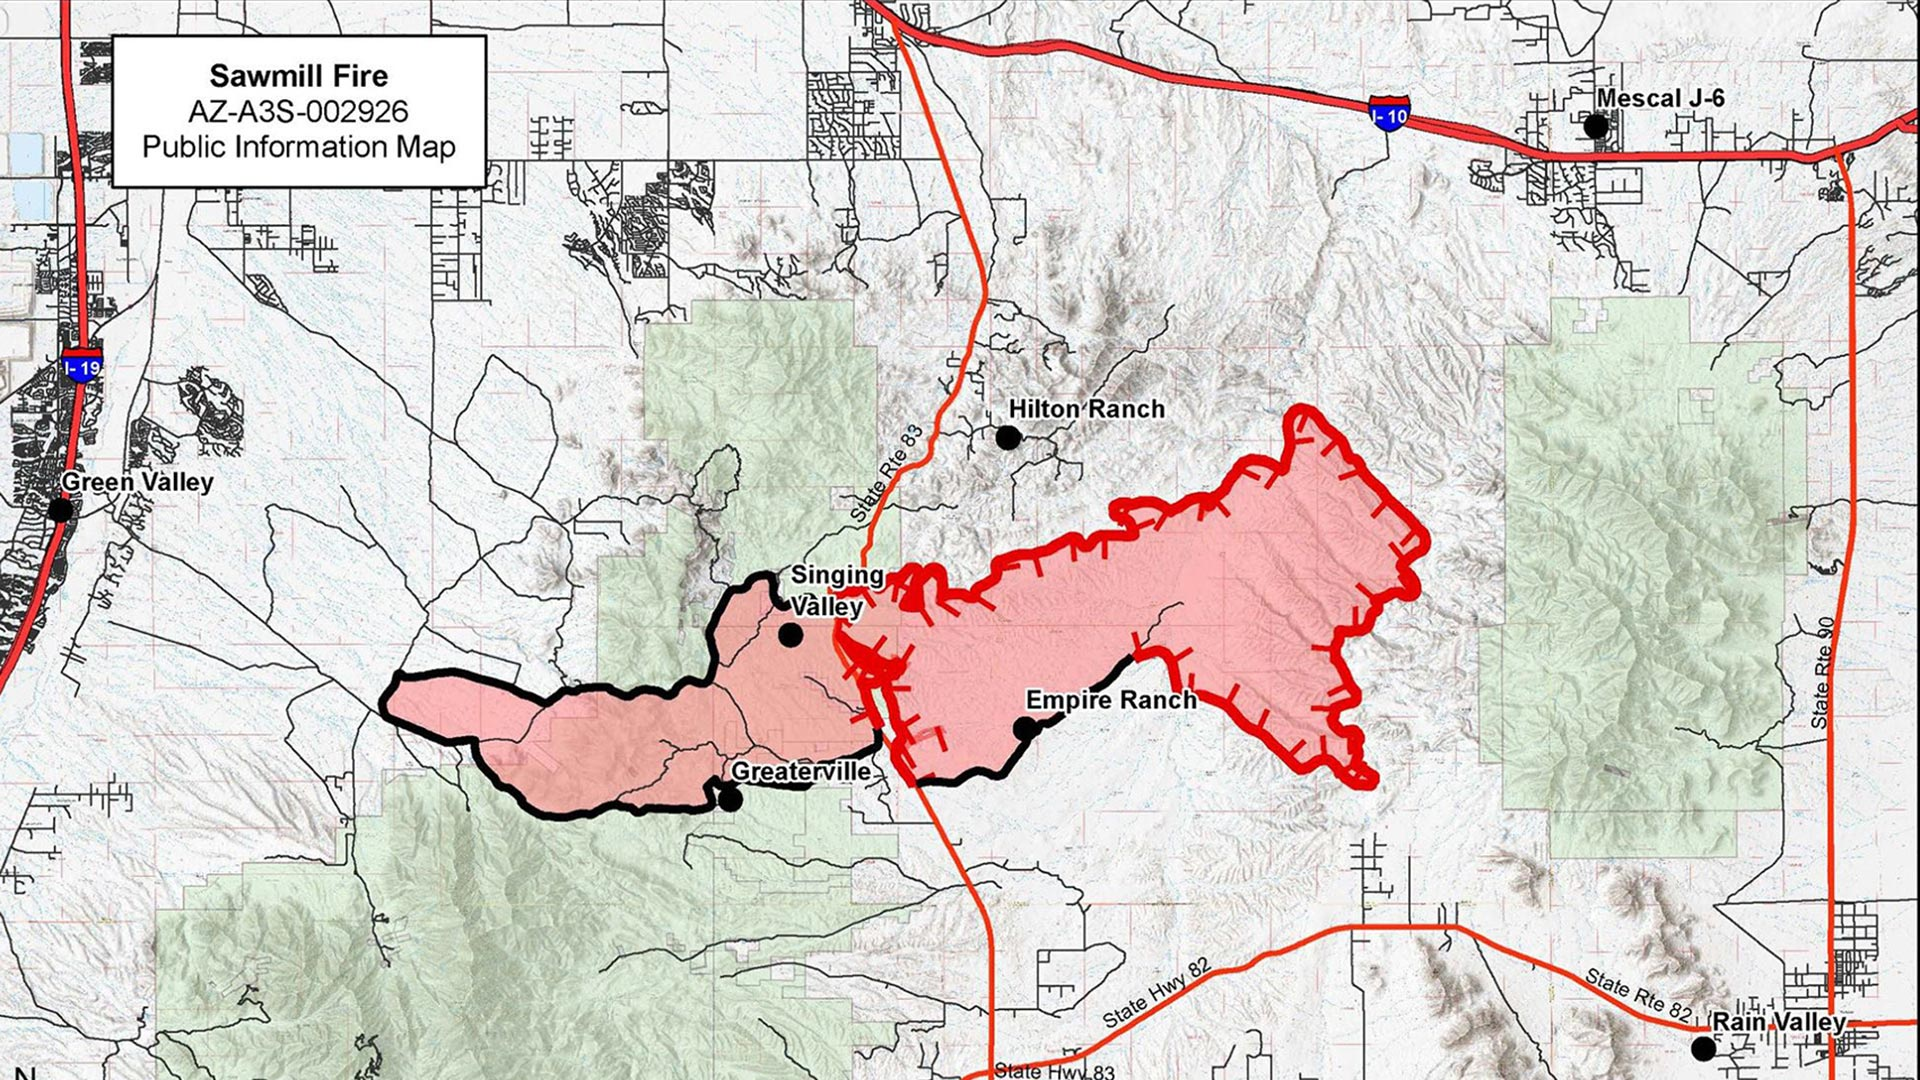 A map of the Sawmill Fire as of April 28.